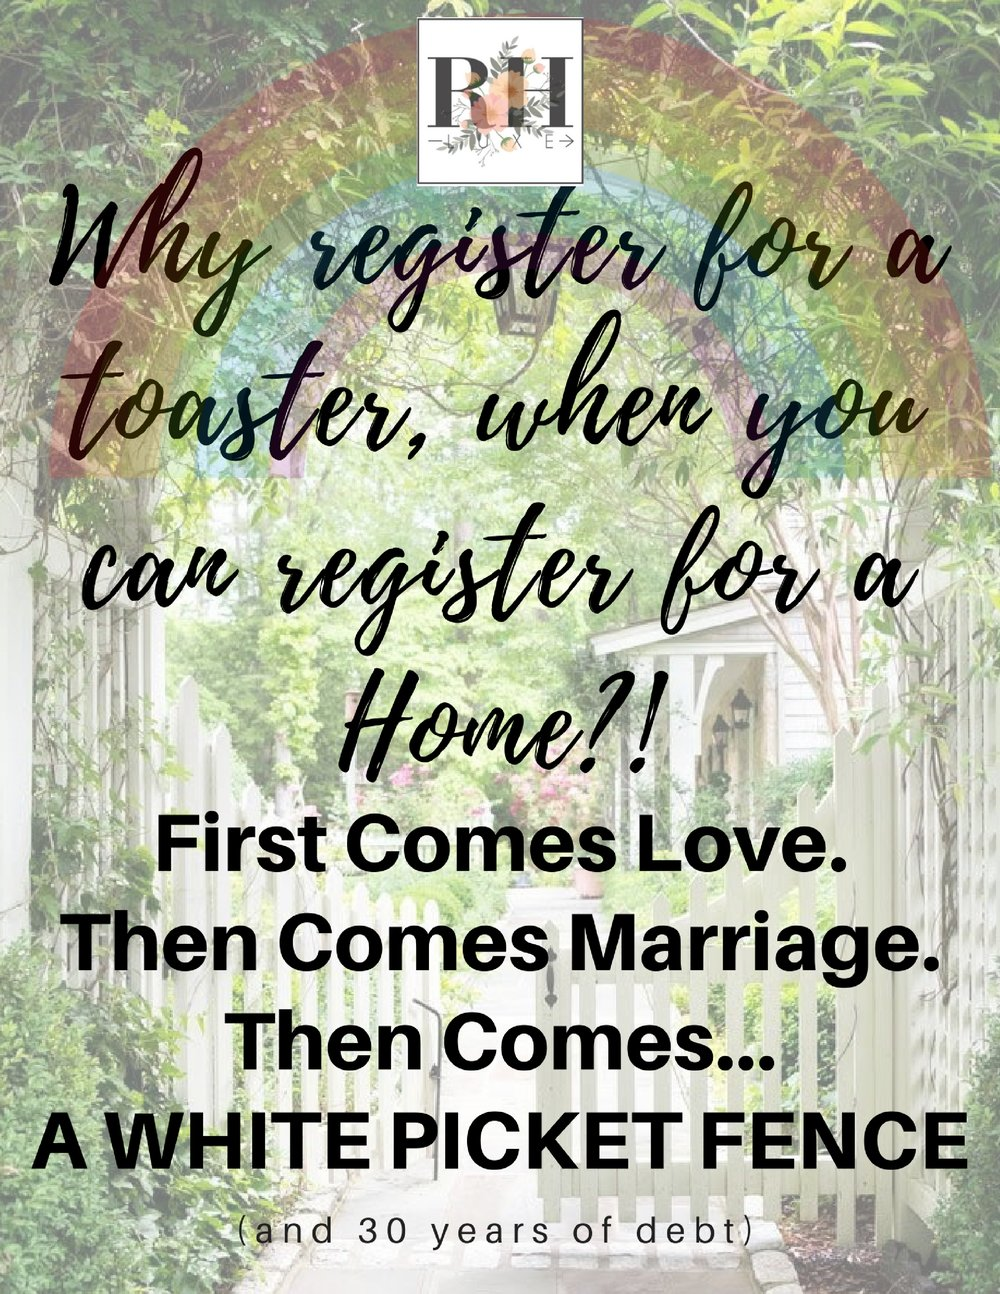 First comes love. Then comes marriage. Then comes... A WHITE PICKET FENCE (1).jpg